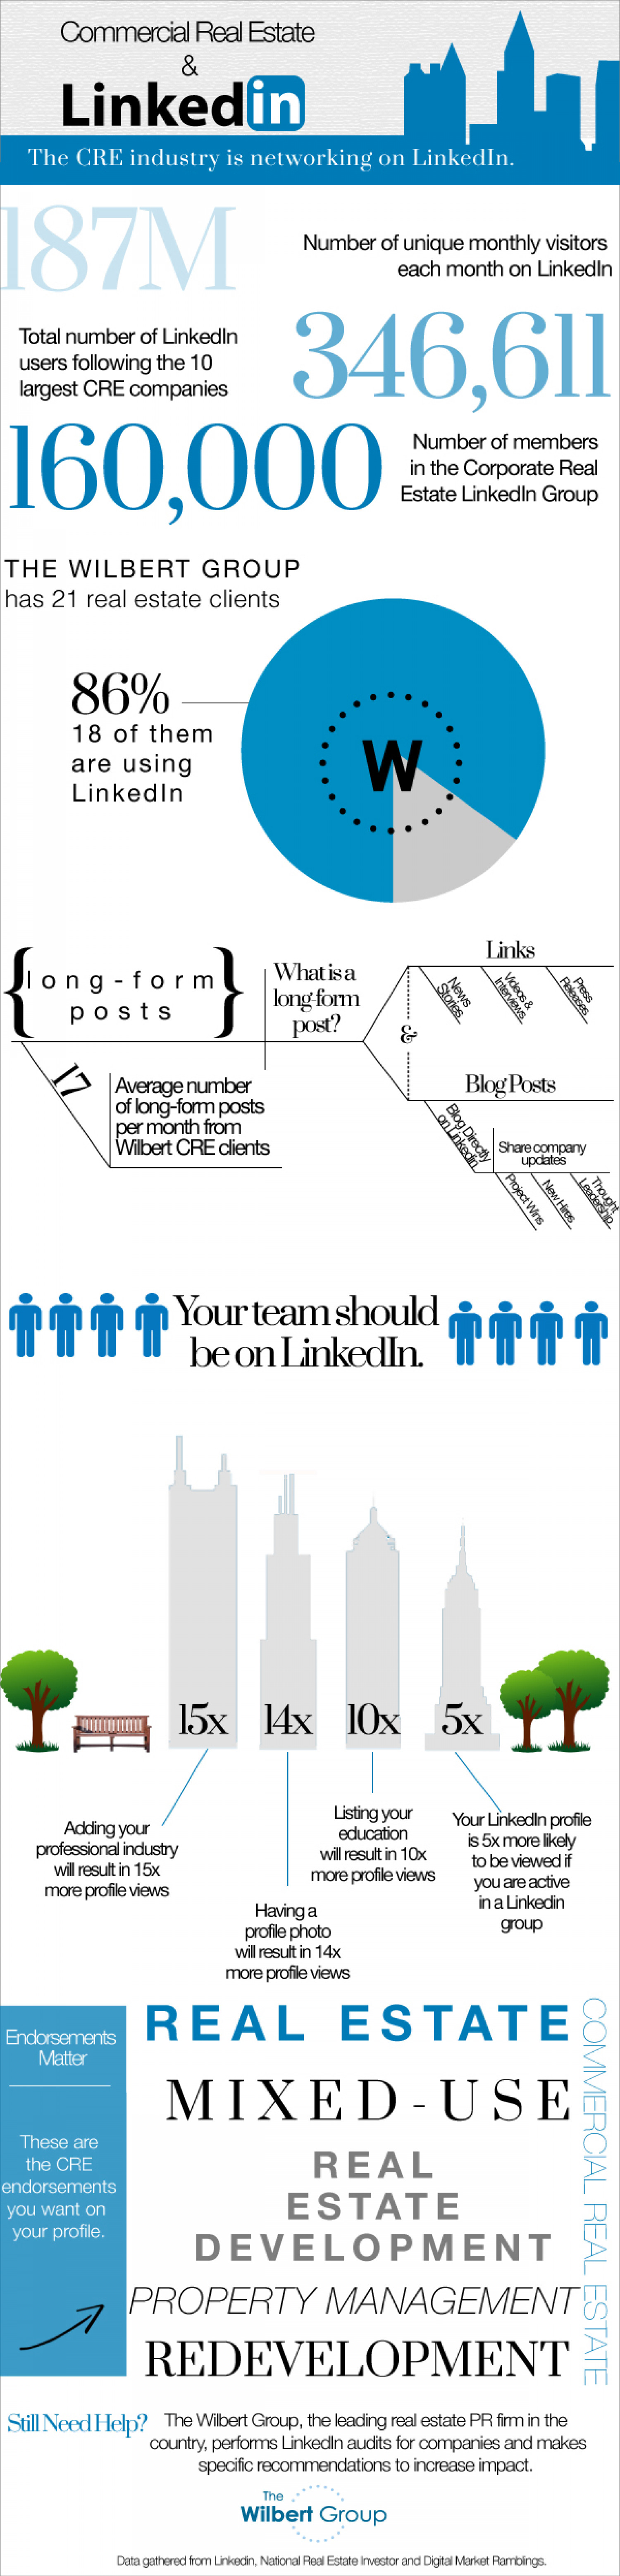 Commercial Real Estate & Linkedin Infographic